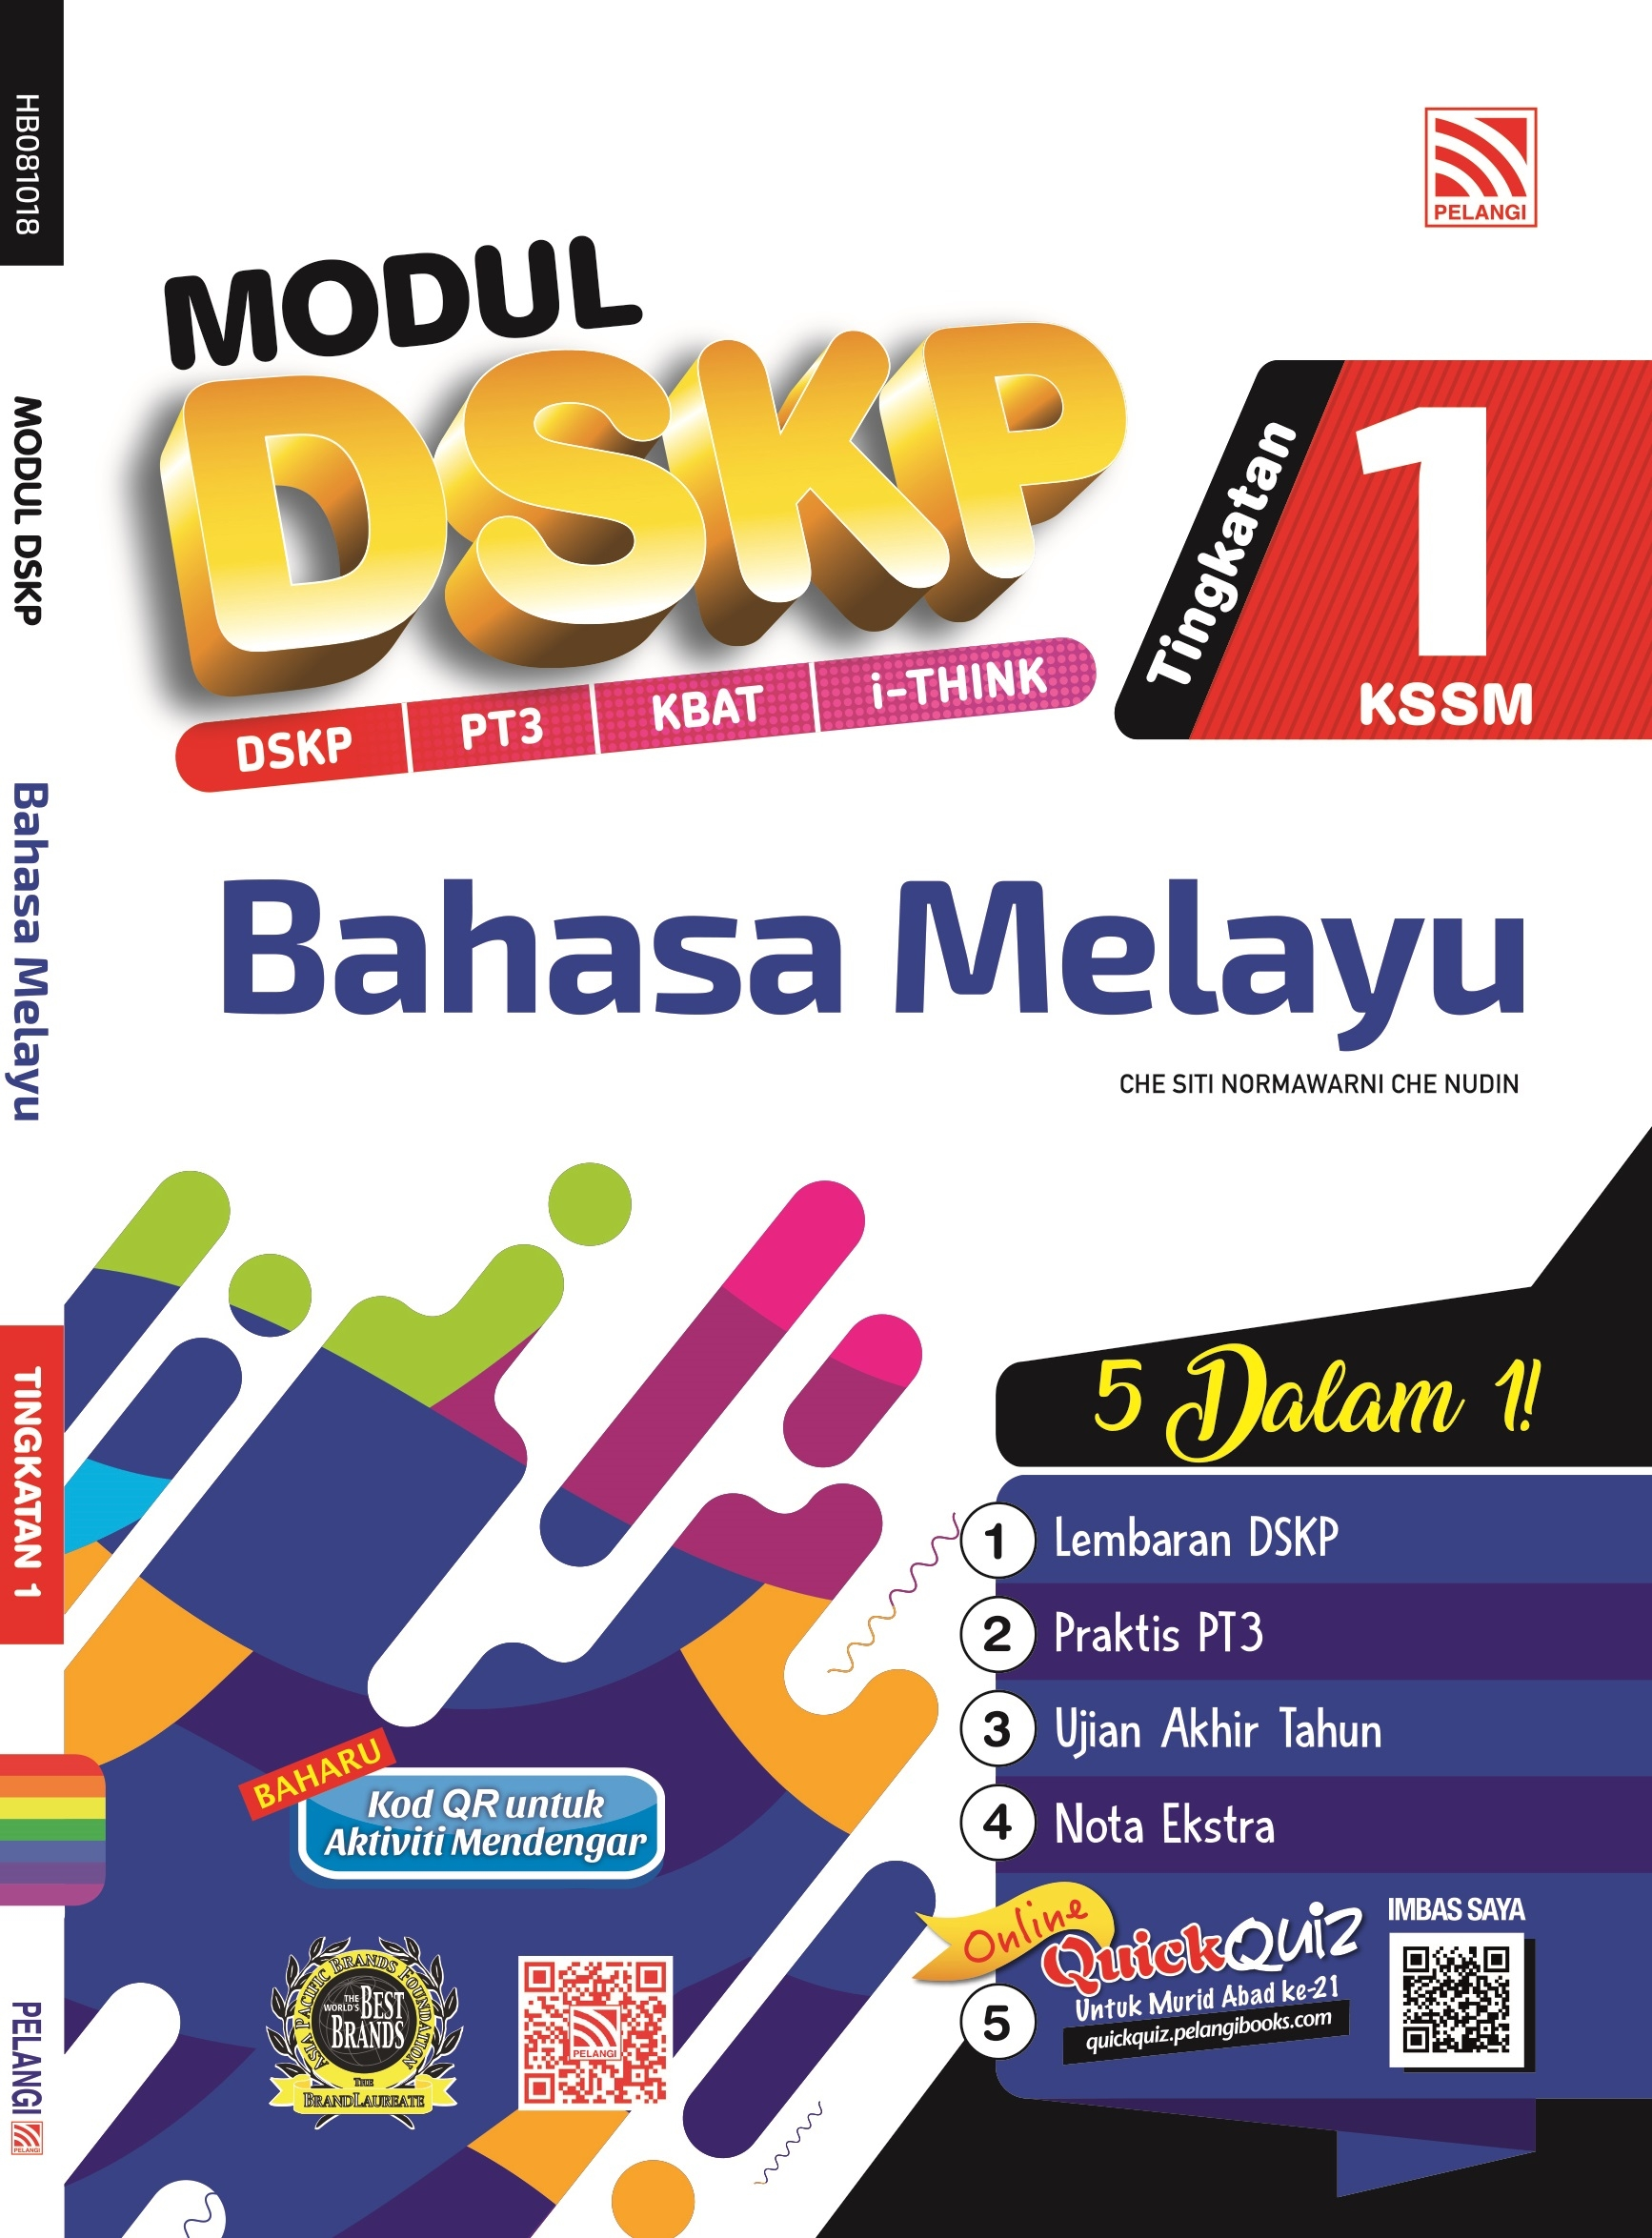 Download Dskp Pendidikan islam Tahun 3 Meletup Pelangi Books Online Educational Bookstore Of Download Segera Dskp Pendidikan Islam Tahun 3 Yang Bermanfaat Khas Untuk Guru-guru Perolehi!